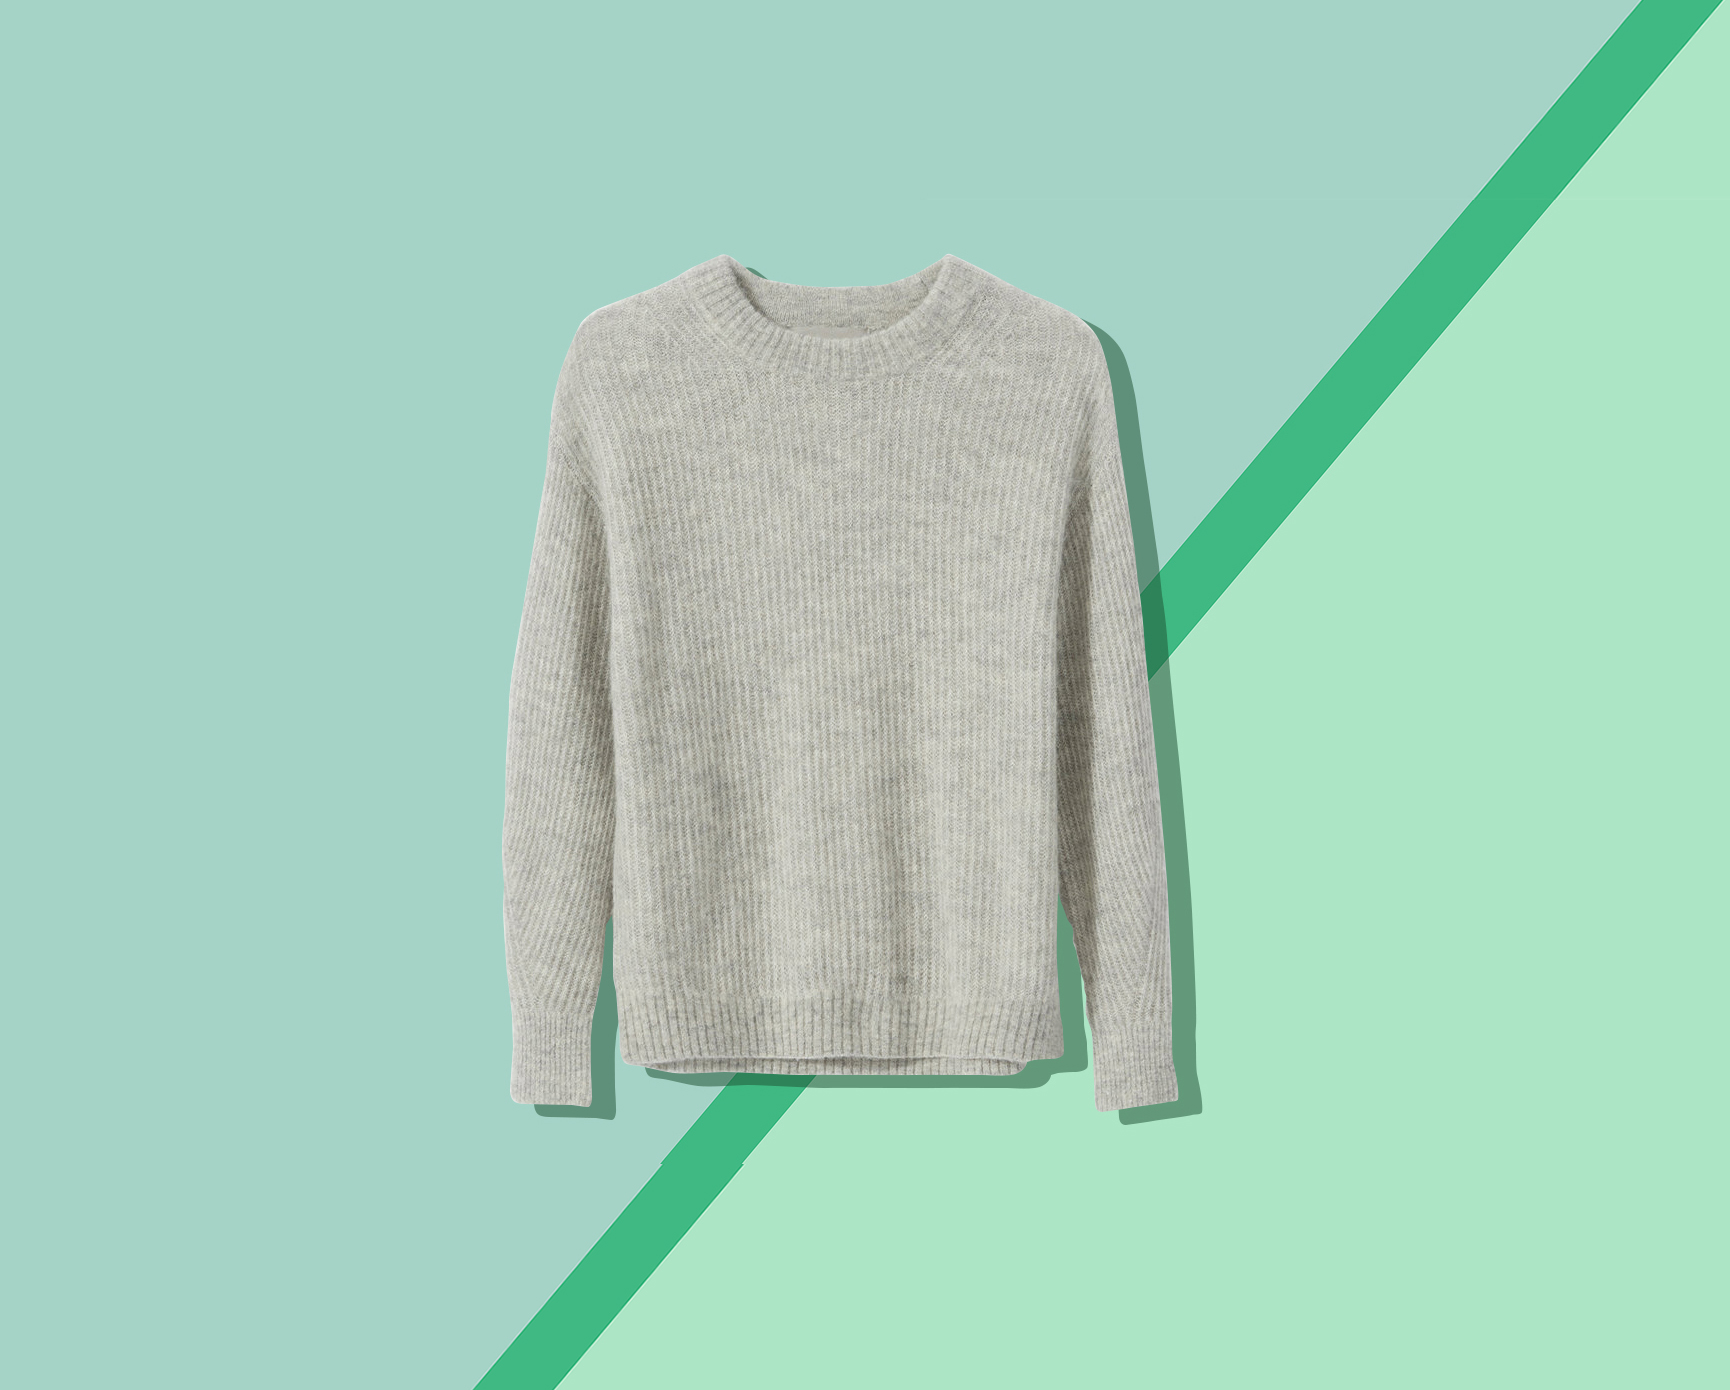 7 Seriously Cozy Oversized Sweaters